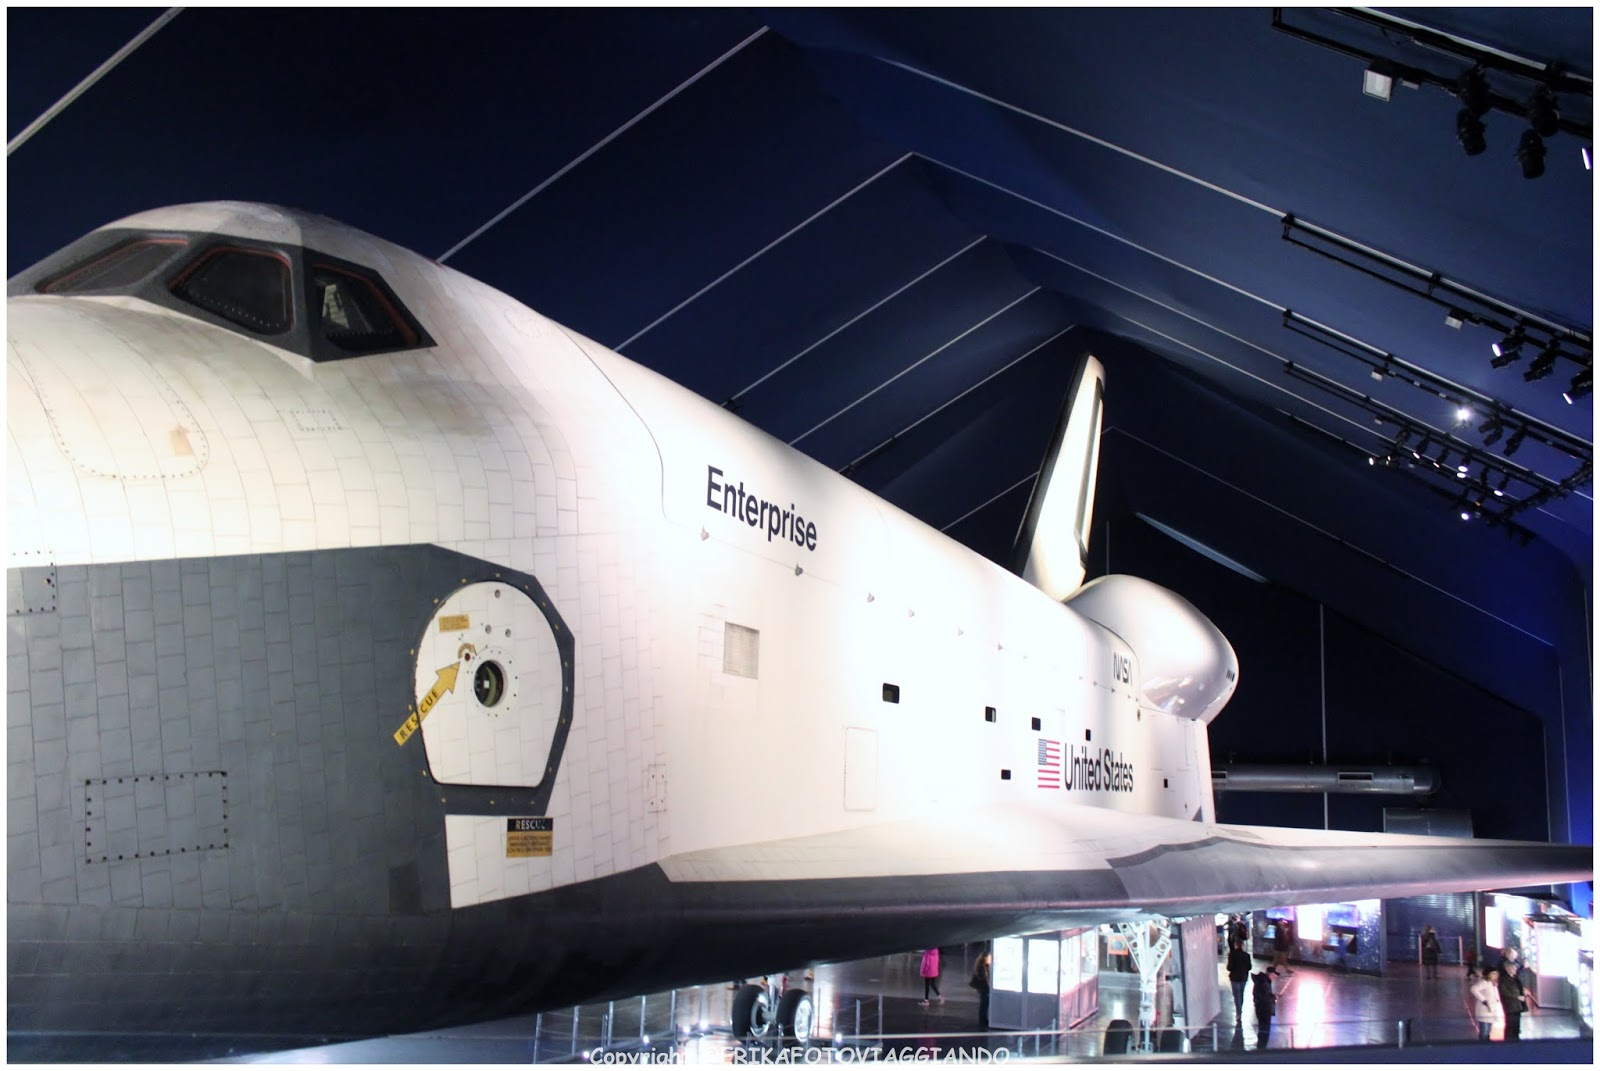 2017 newest space shuttle - photo #11